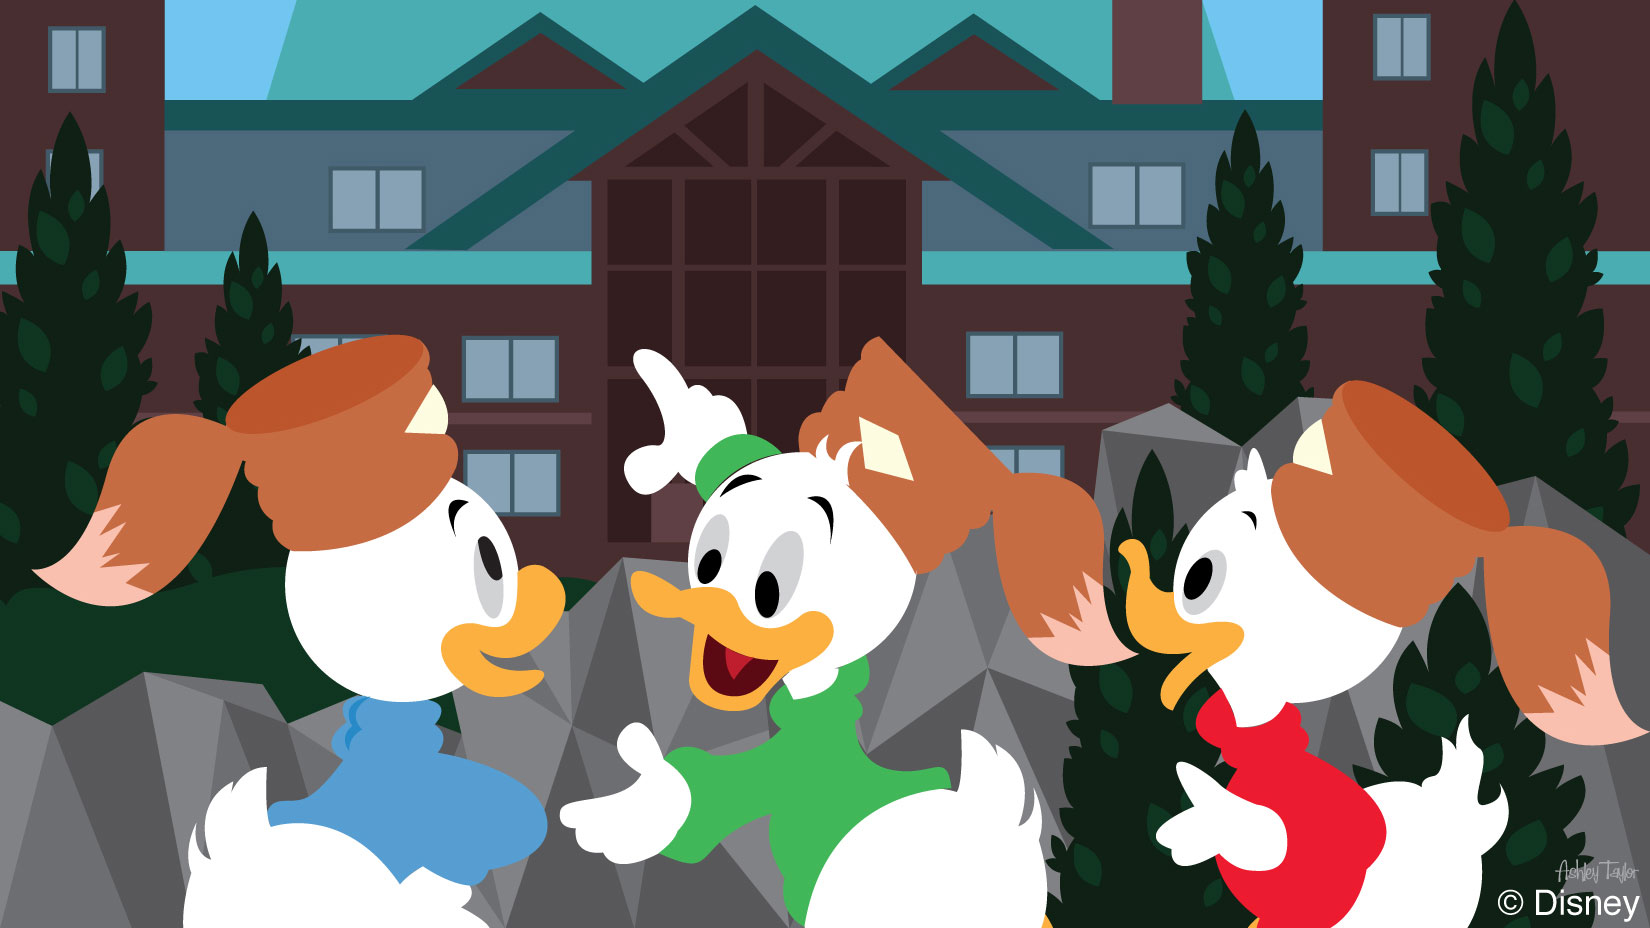 Disney Doodles: Huey, Dewey & Louie Head to Disney's Wilderness Lodge